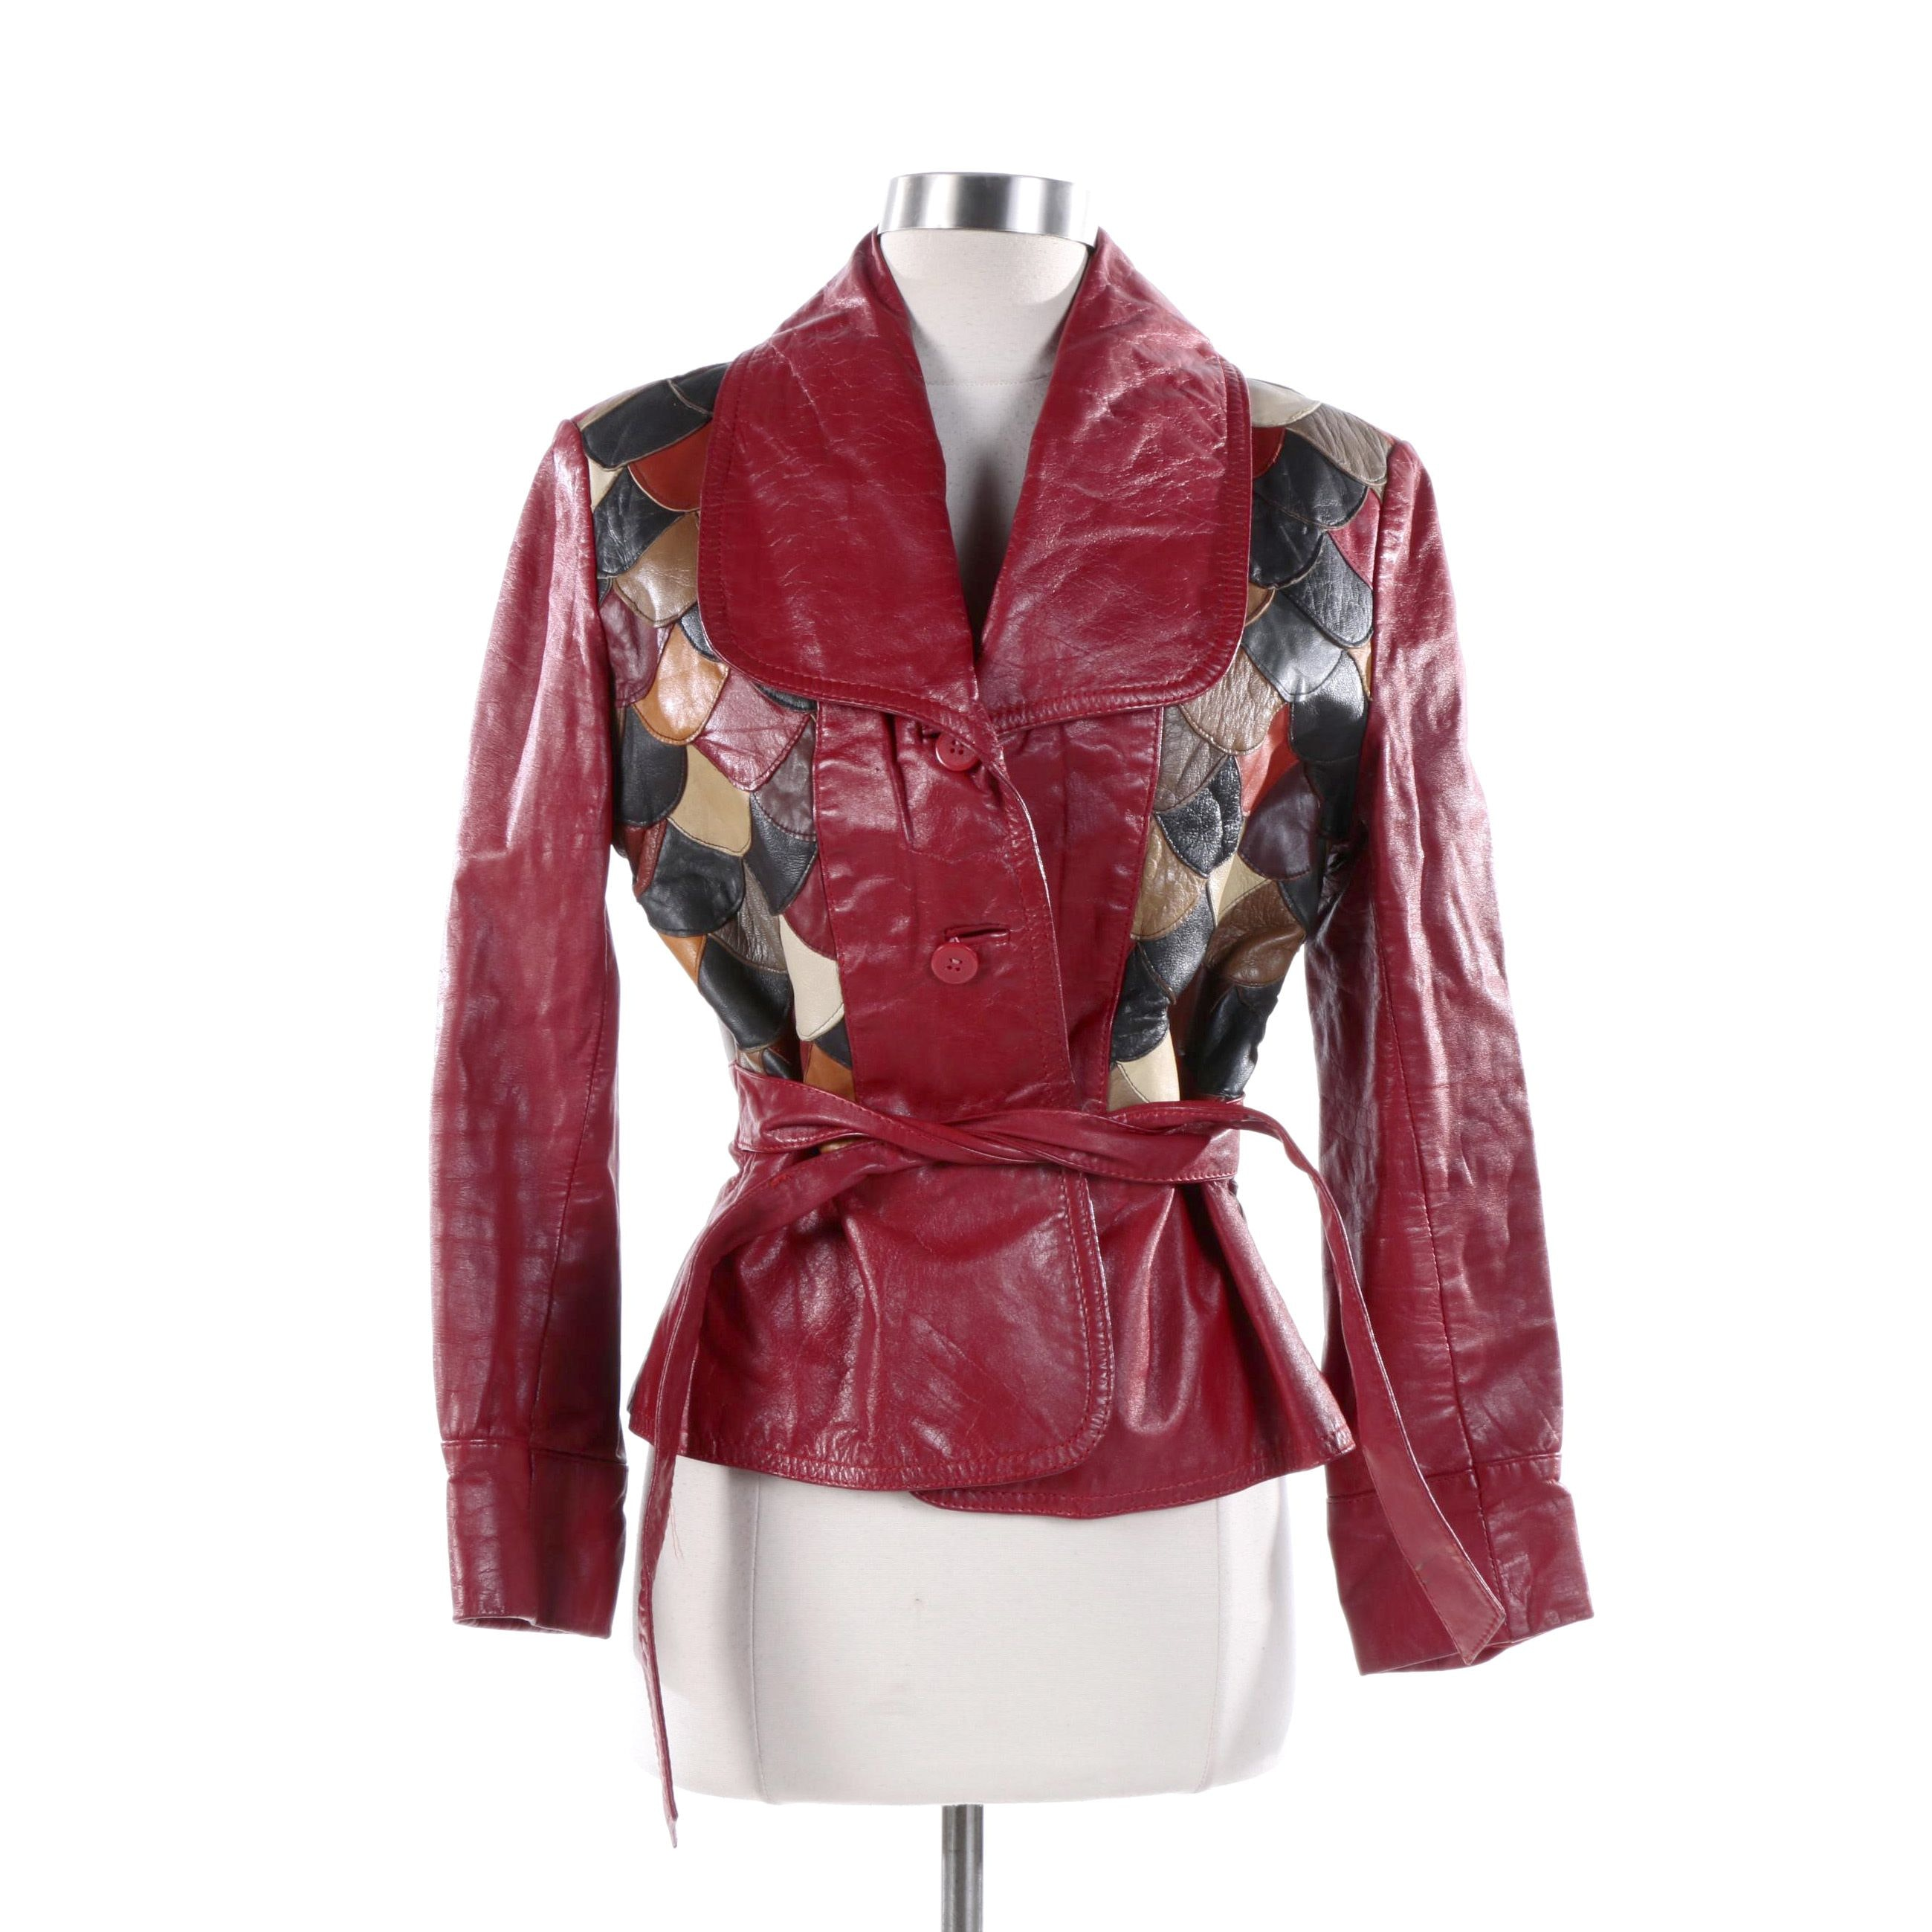 1970s Vintage Faci-Eon Avenue Red Leather Patchwork Jacket with Detailed Back